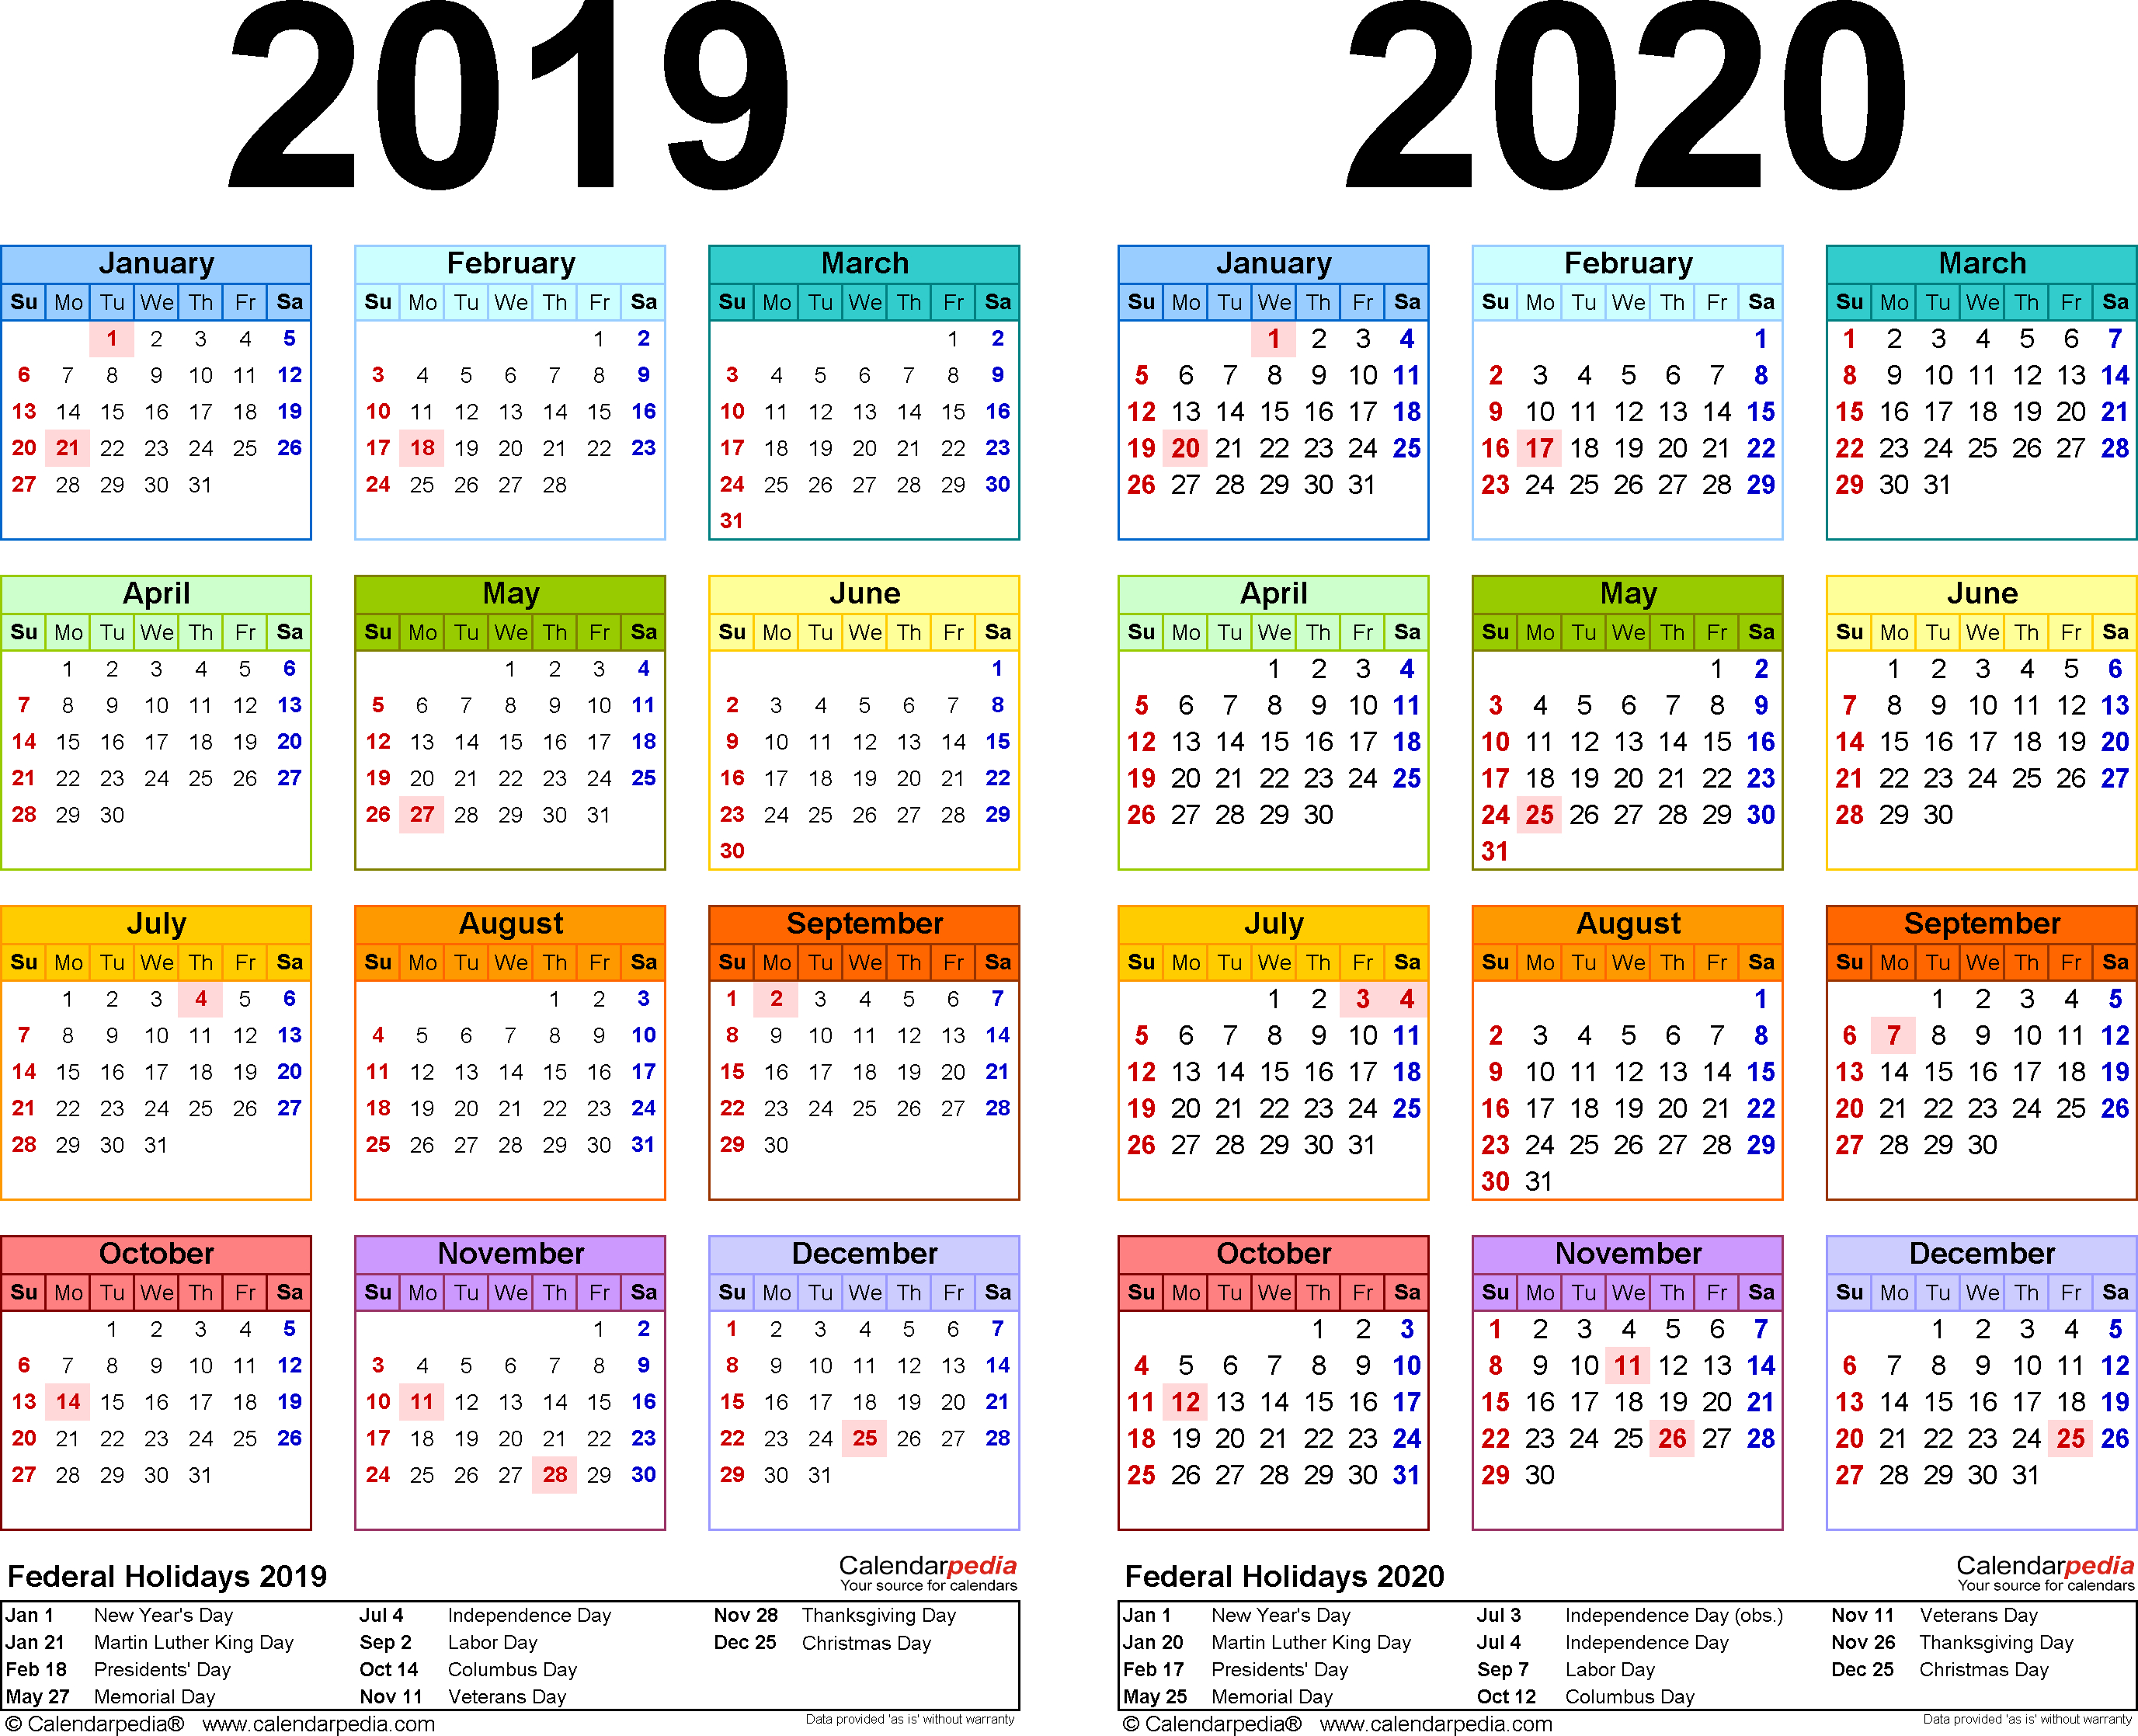 2019-2020 Calendar - Free Printable Two-Year Pdf Calendars pertaining to Year At A Glance Calendar 2019-2020